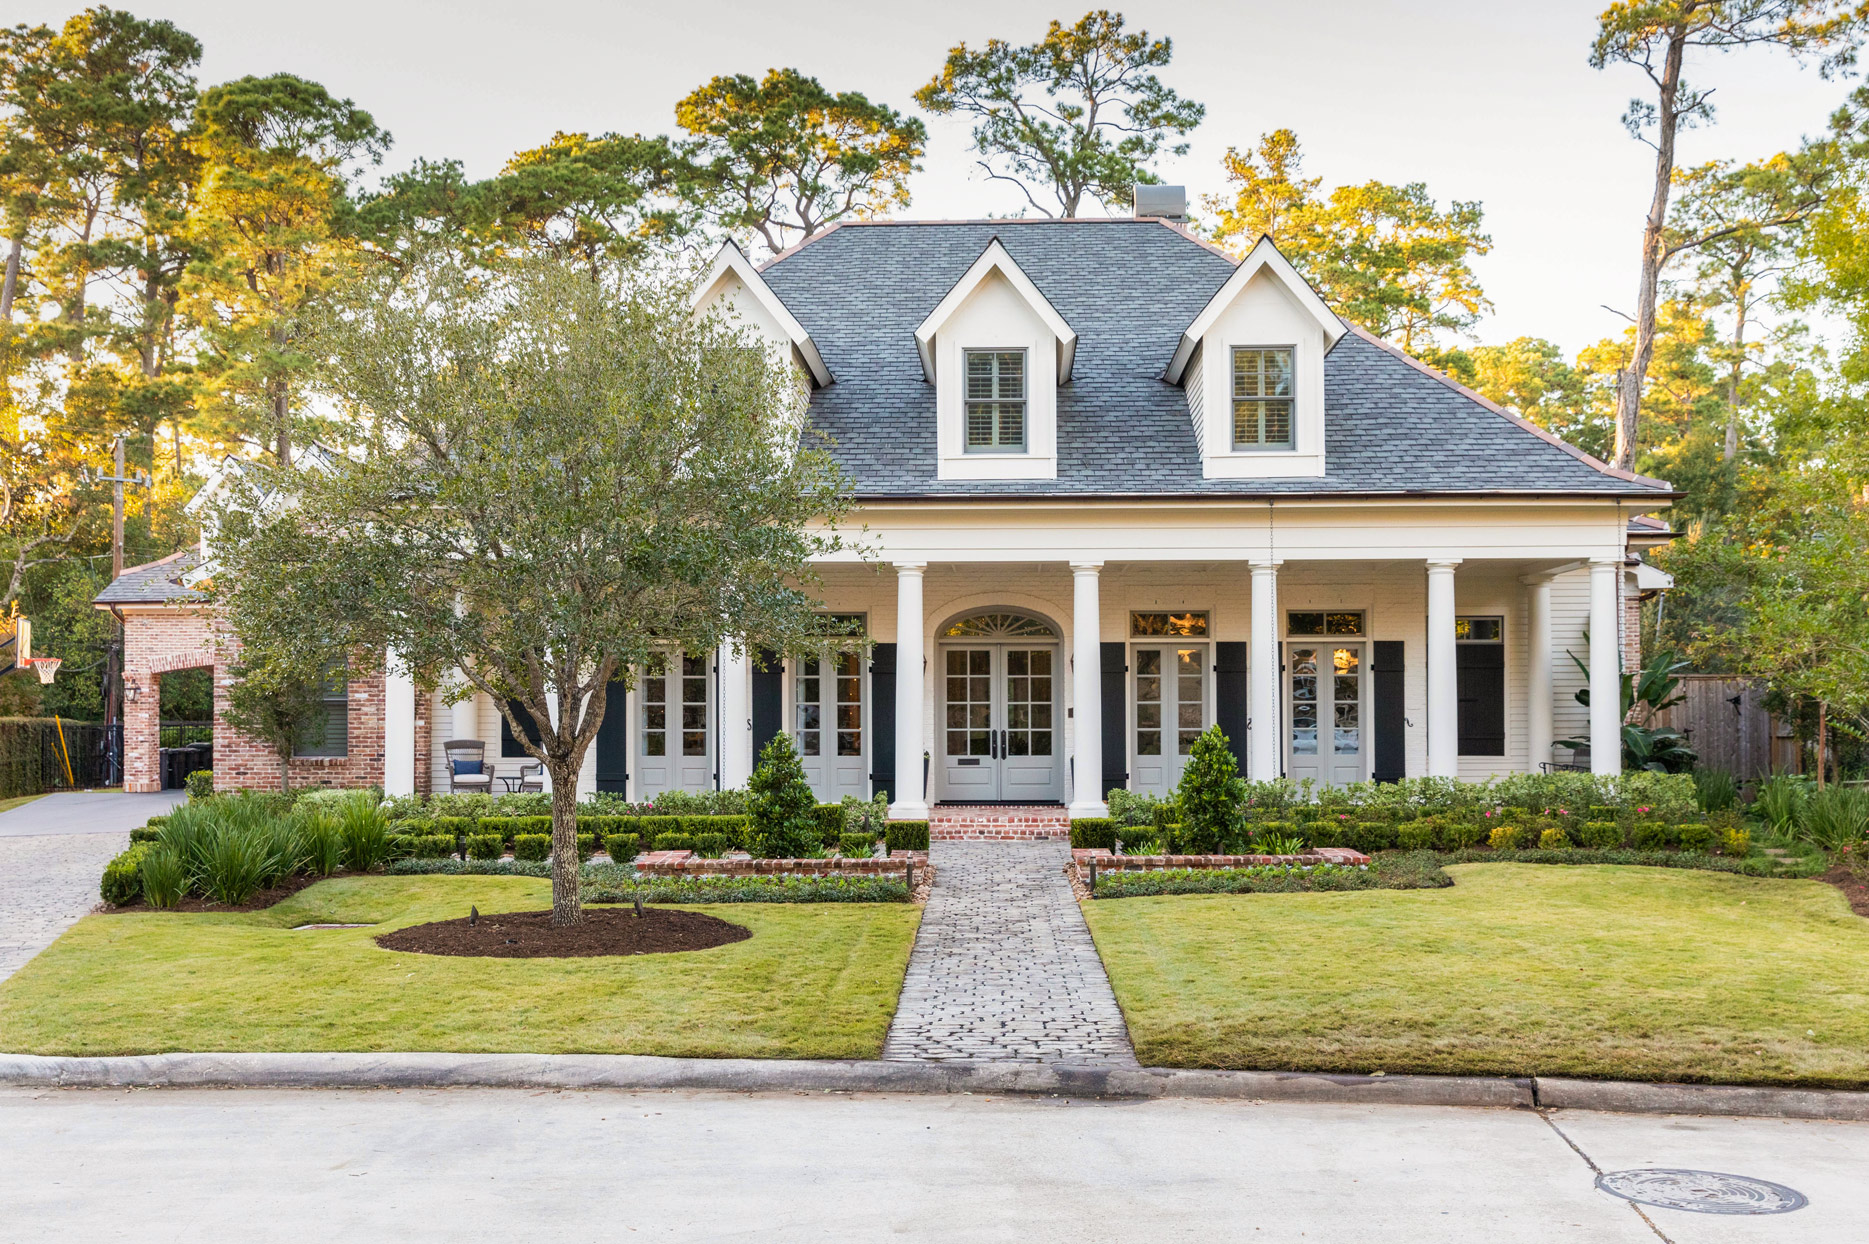 home front exterior white pillars